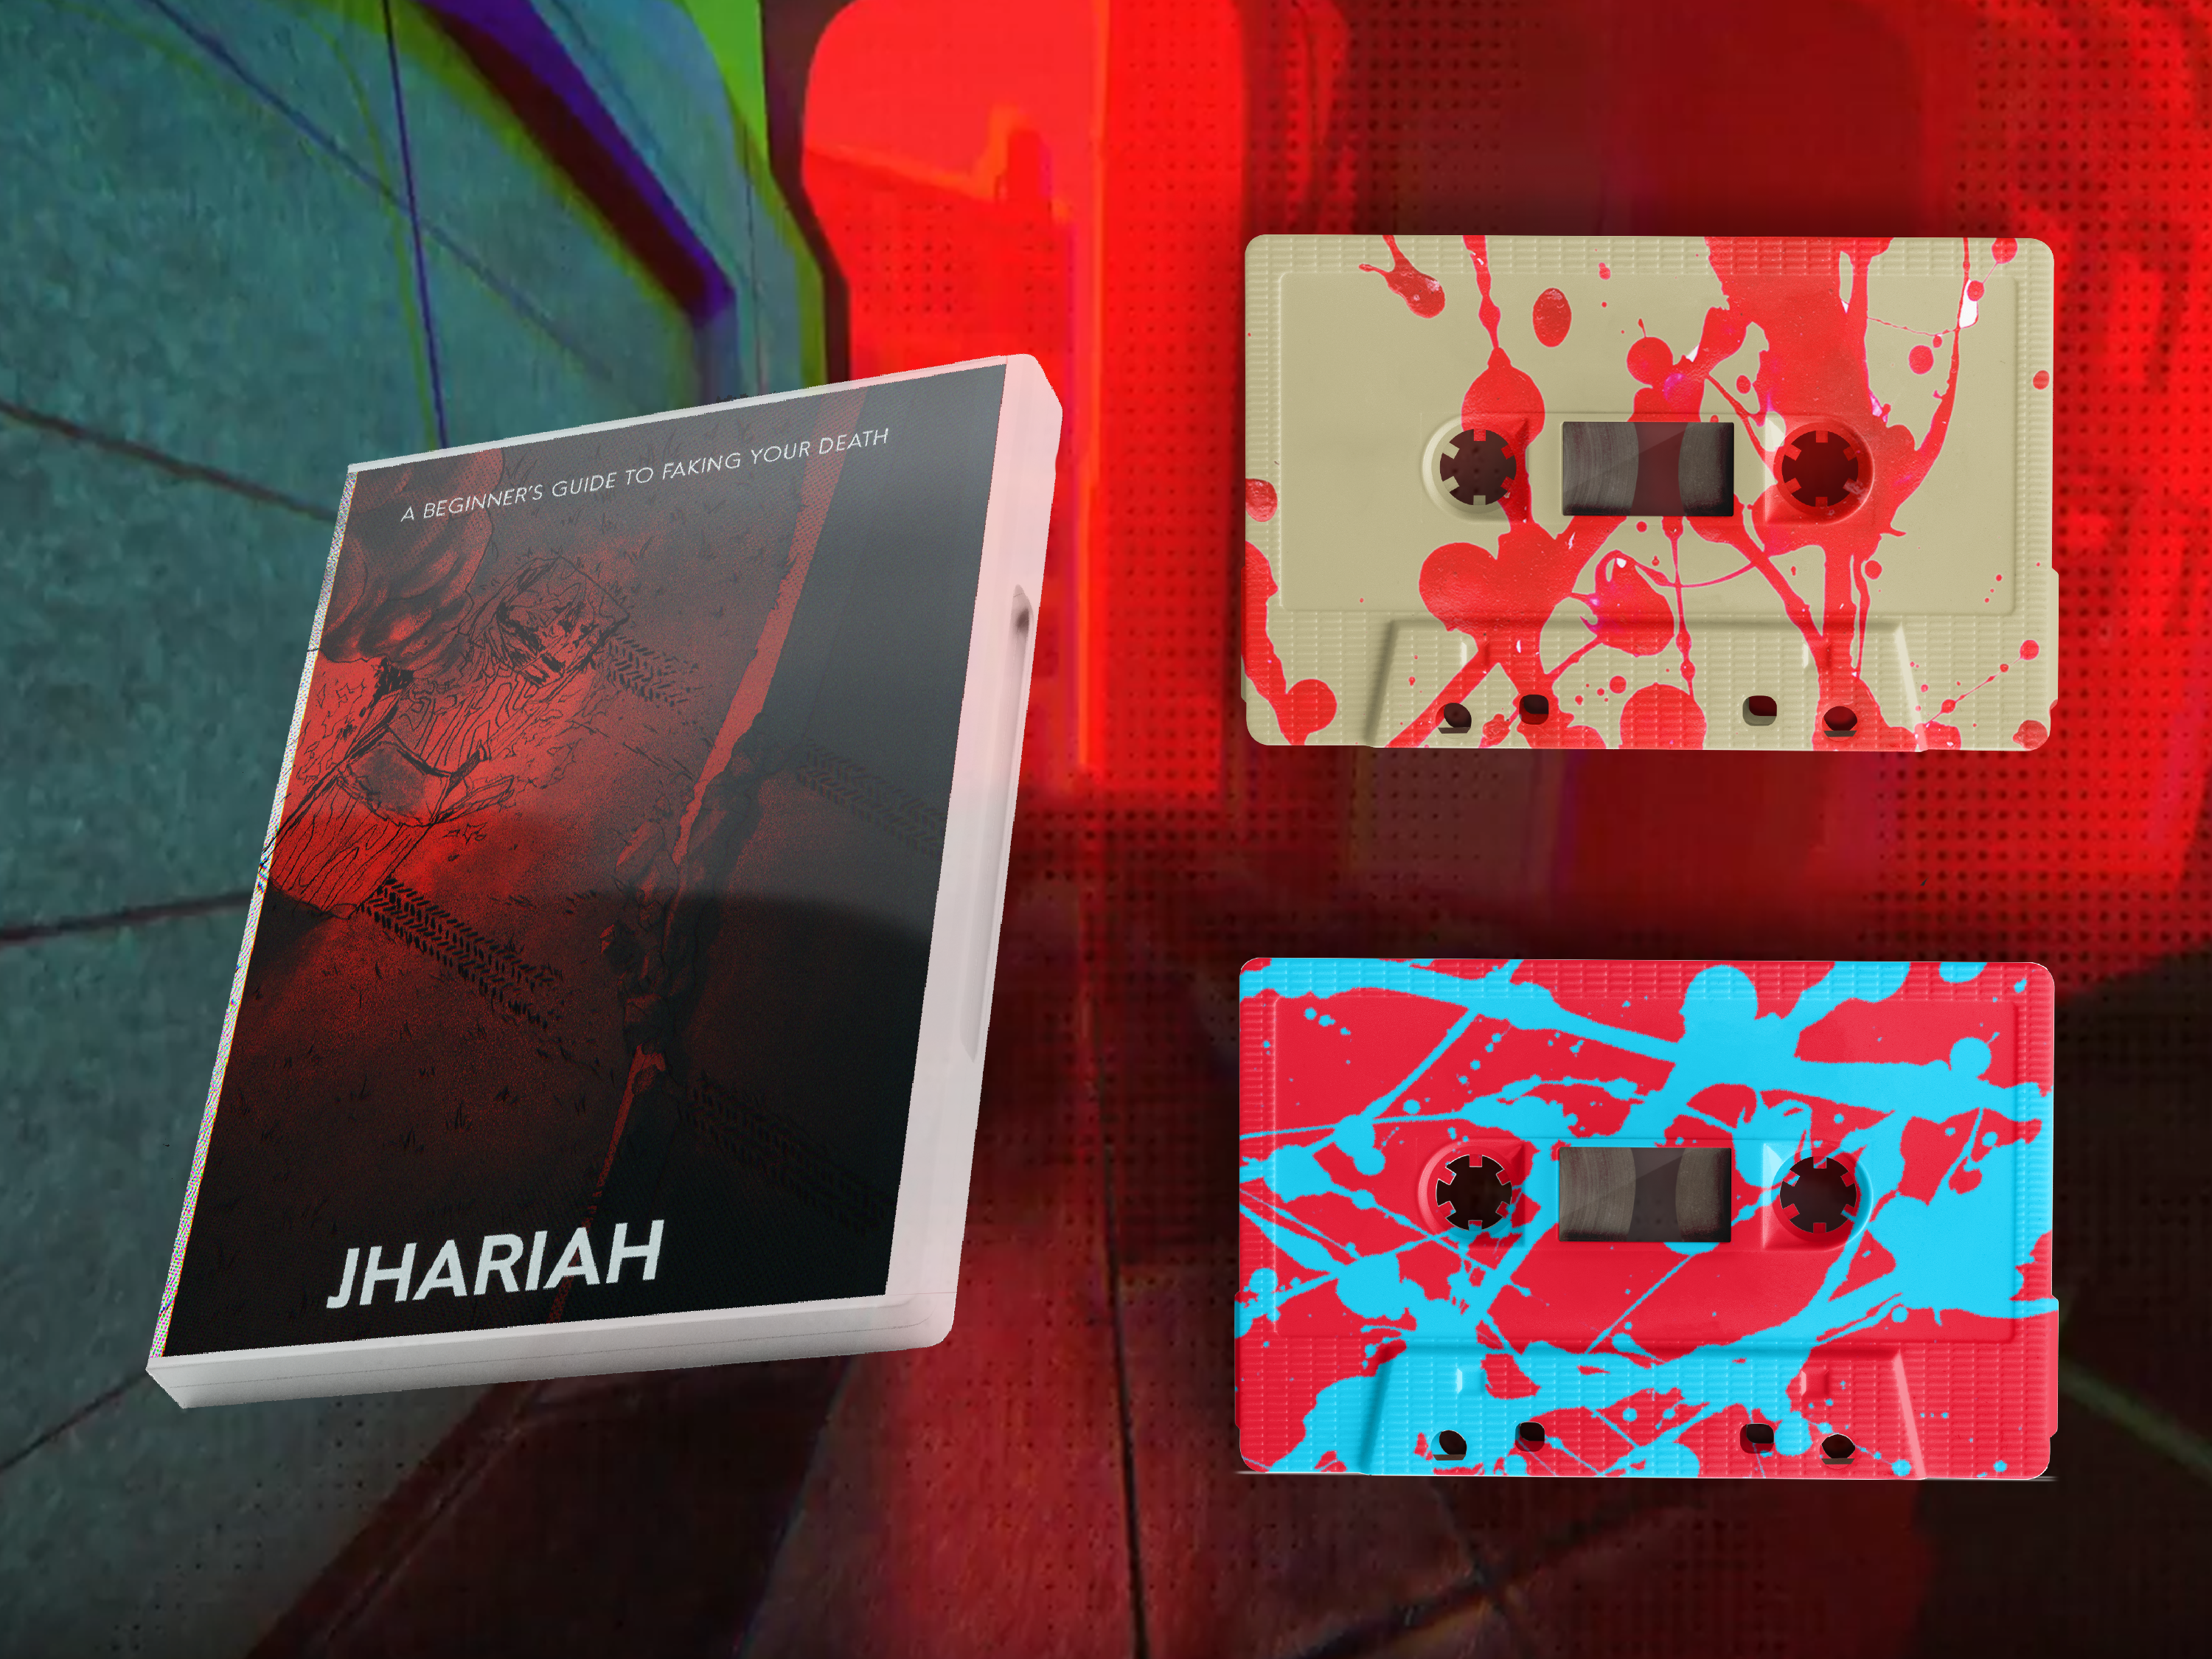 Jhariah - A Beginner's Guide To Faking Your Own Death (Limited Edition Vinyl Casette Packaging)